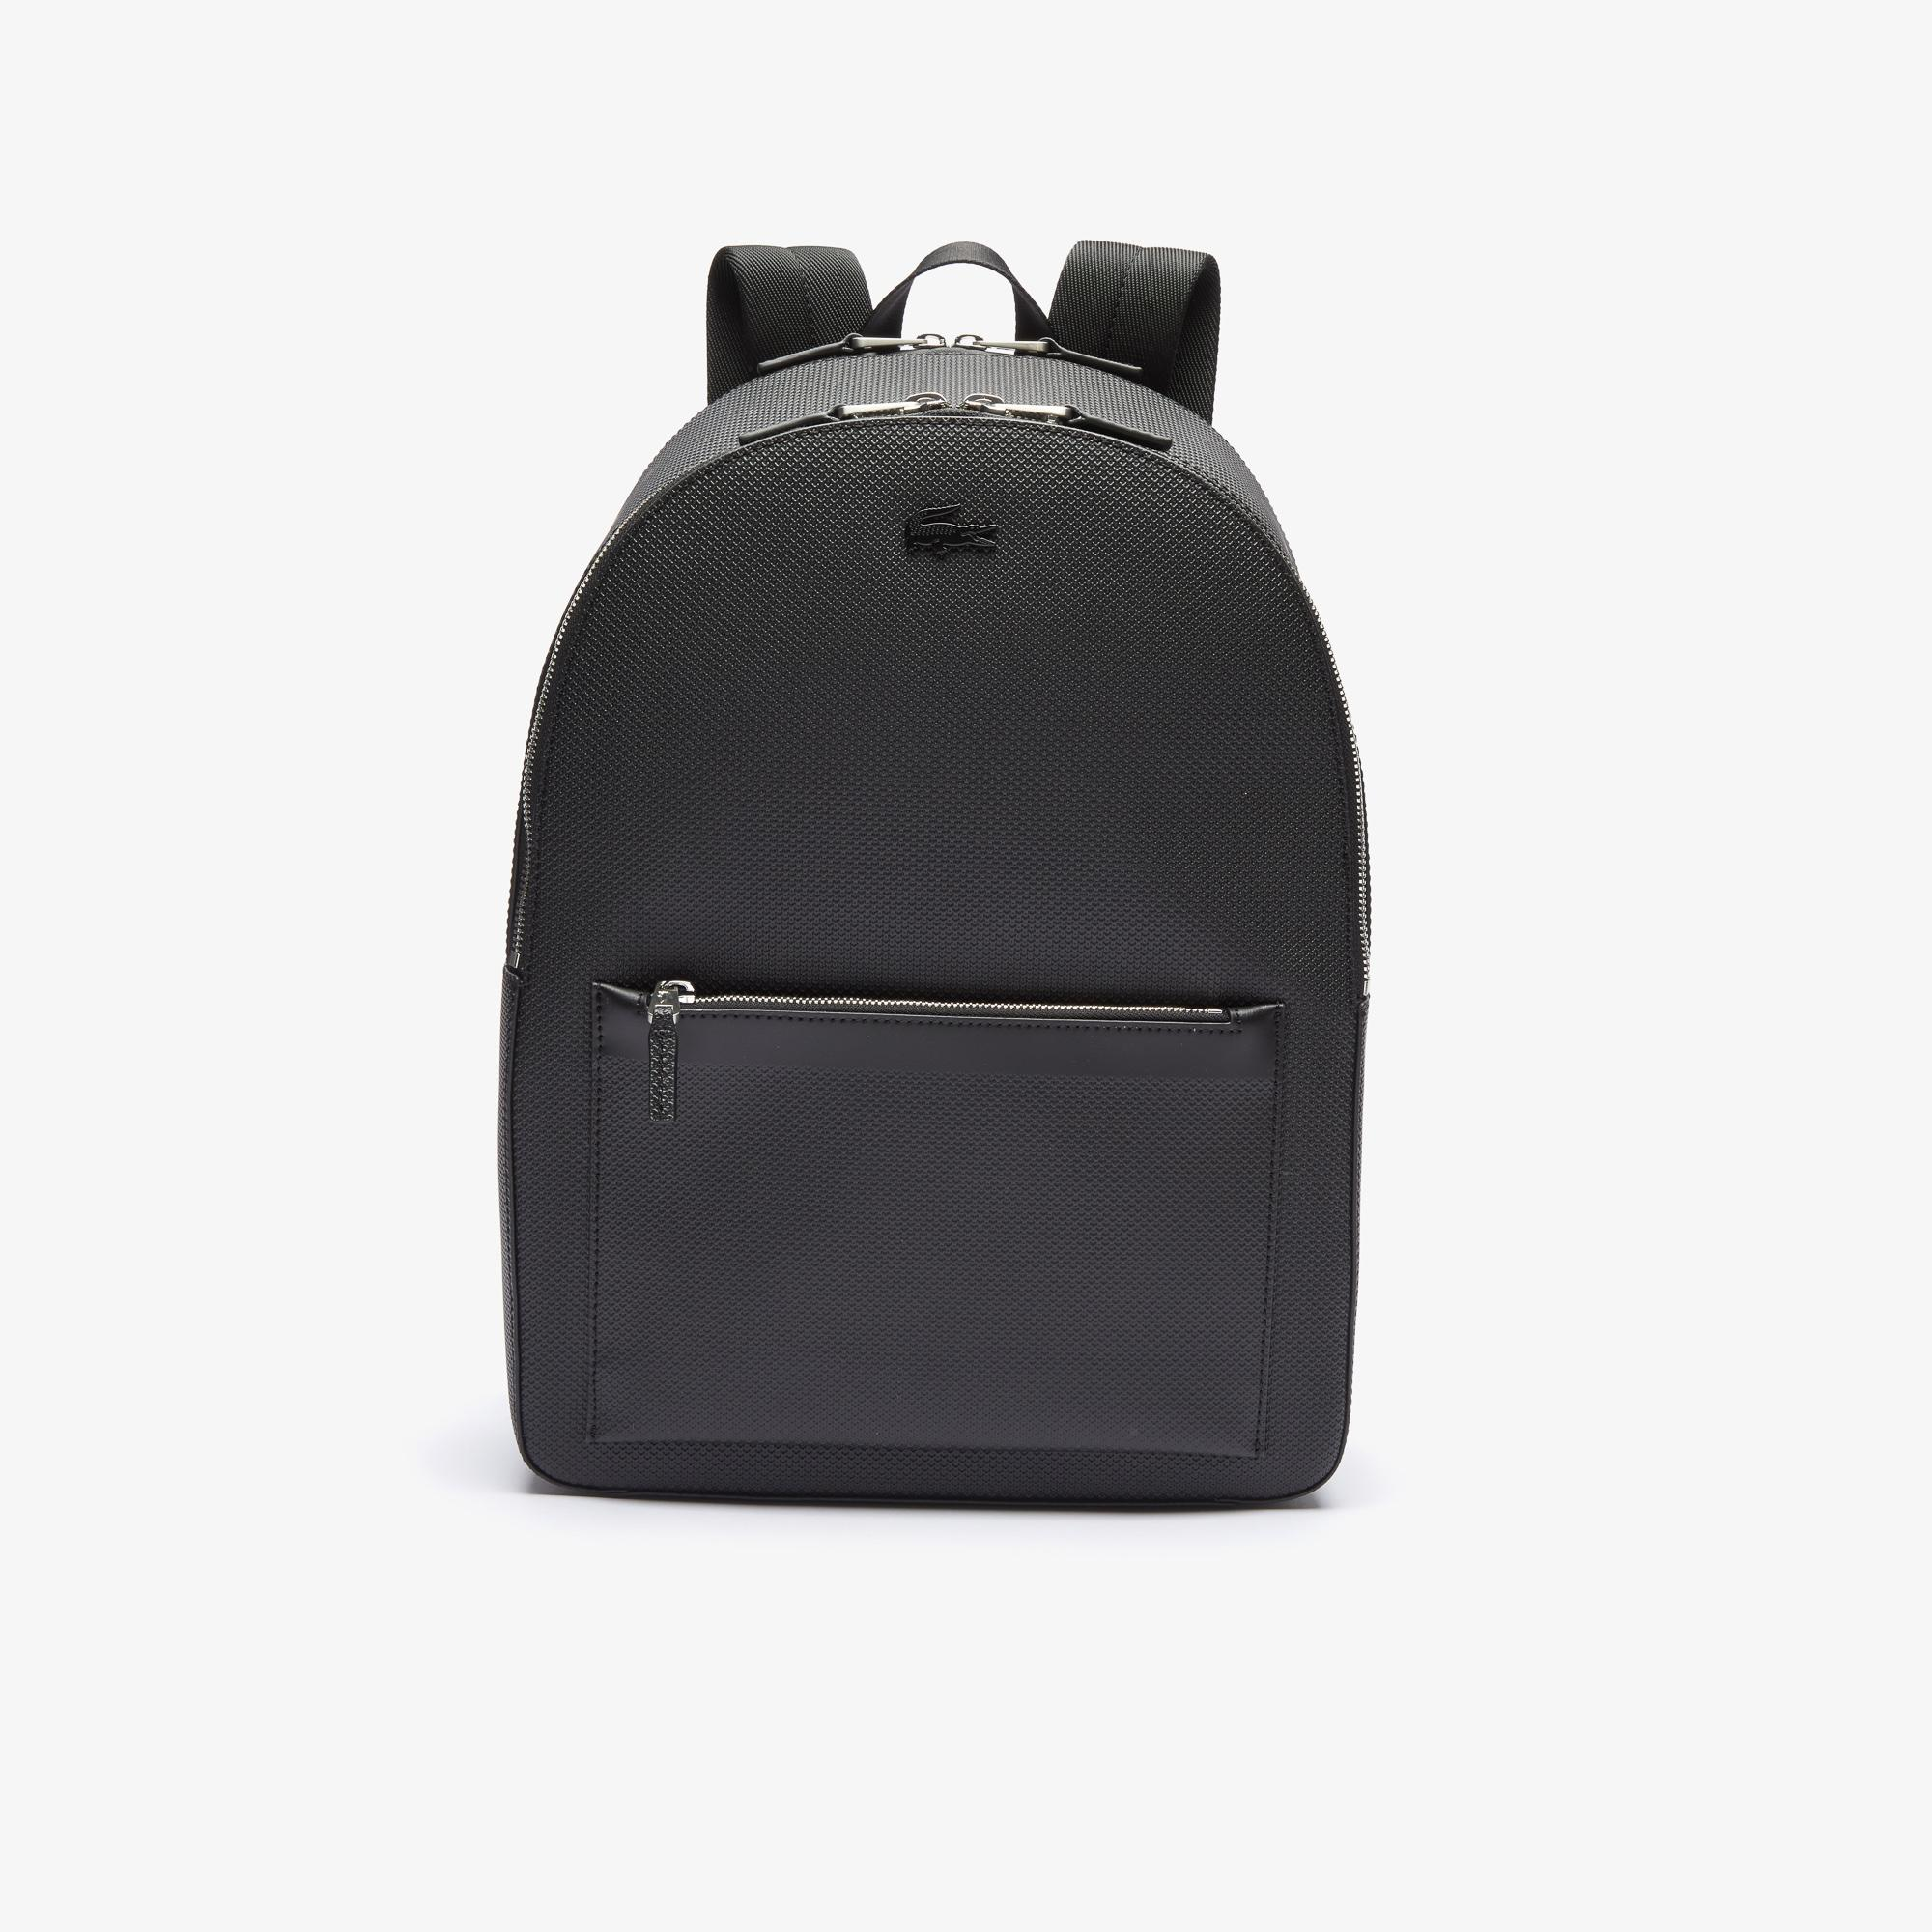 Lacoste Men's Chantaco Matte Stitched Leather Backpack